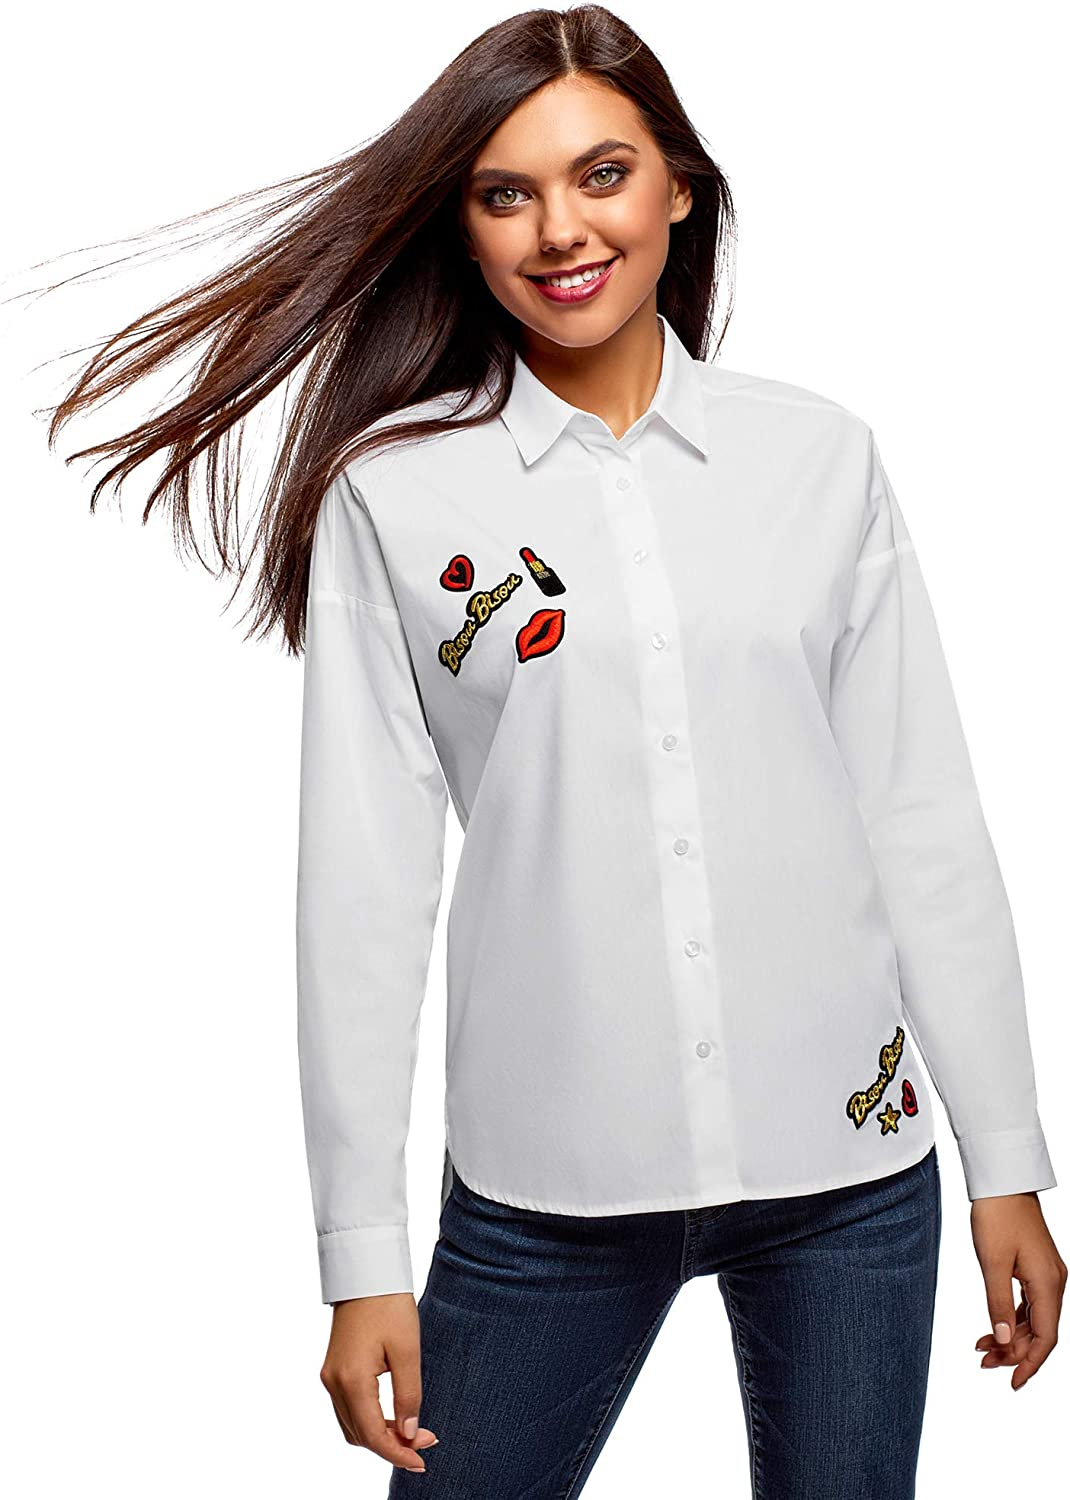 Oodji Ultra Women's RelaxedFit Cotton Shirt with Patches